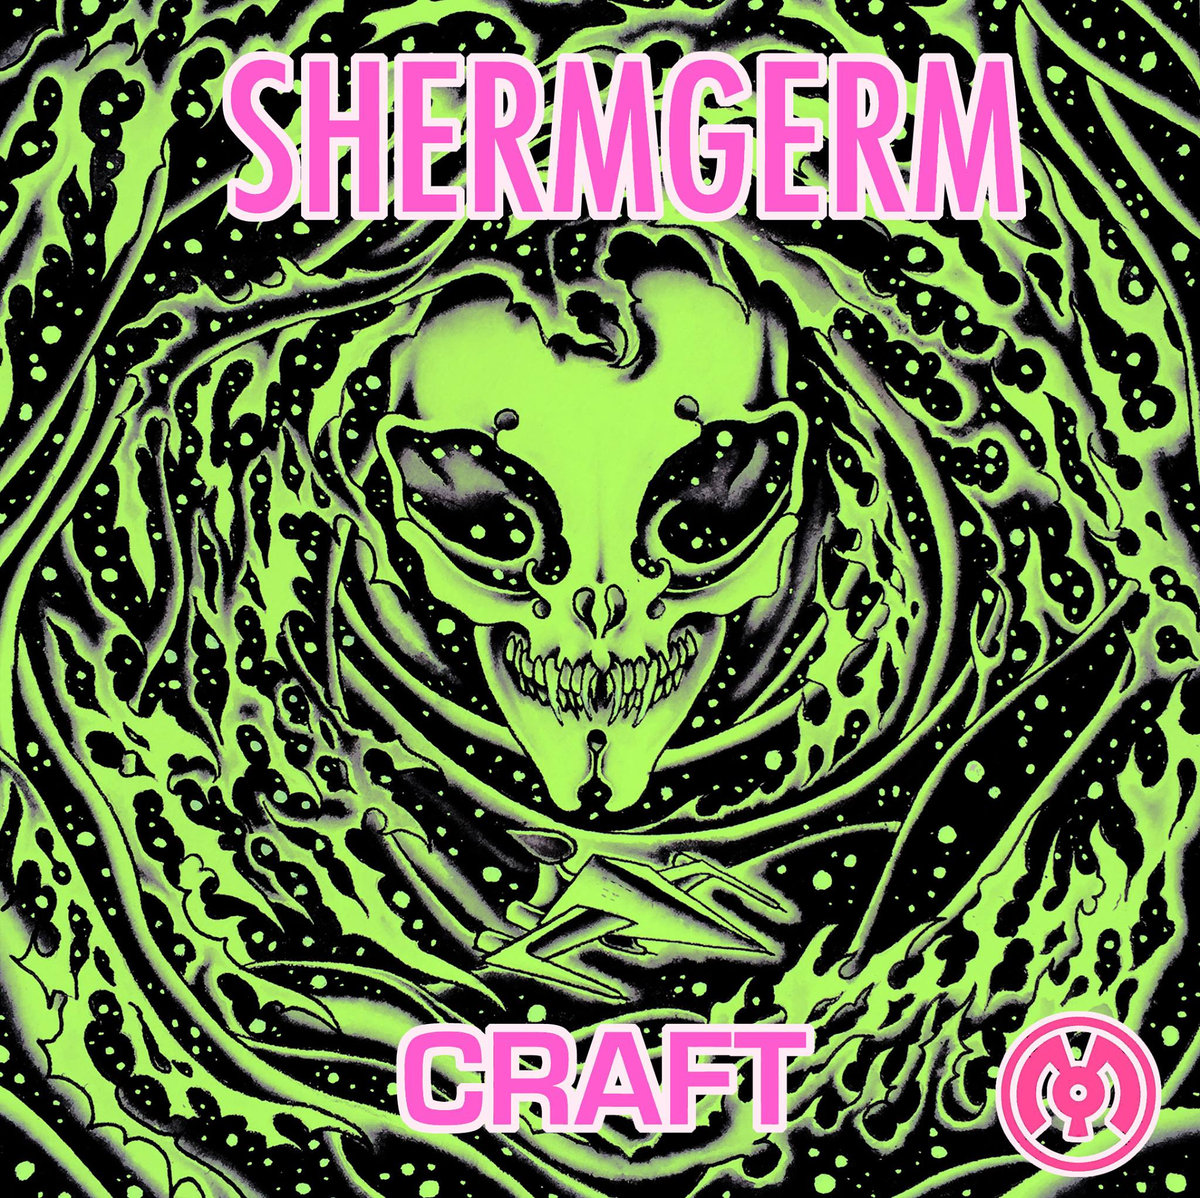 ShermGerm - Craft (artwork)